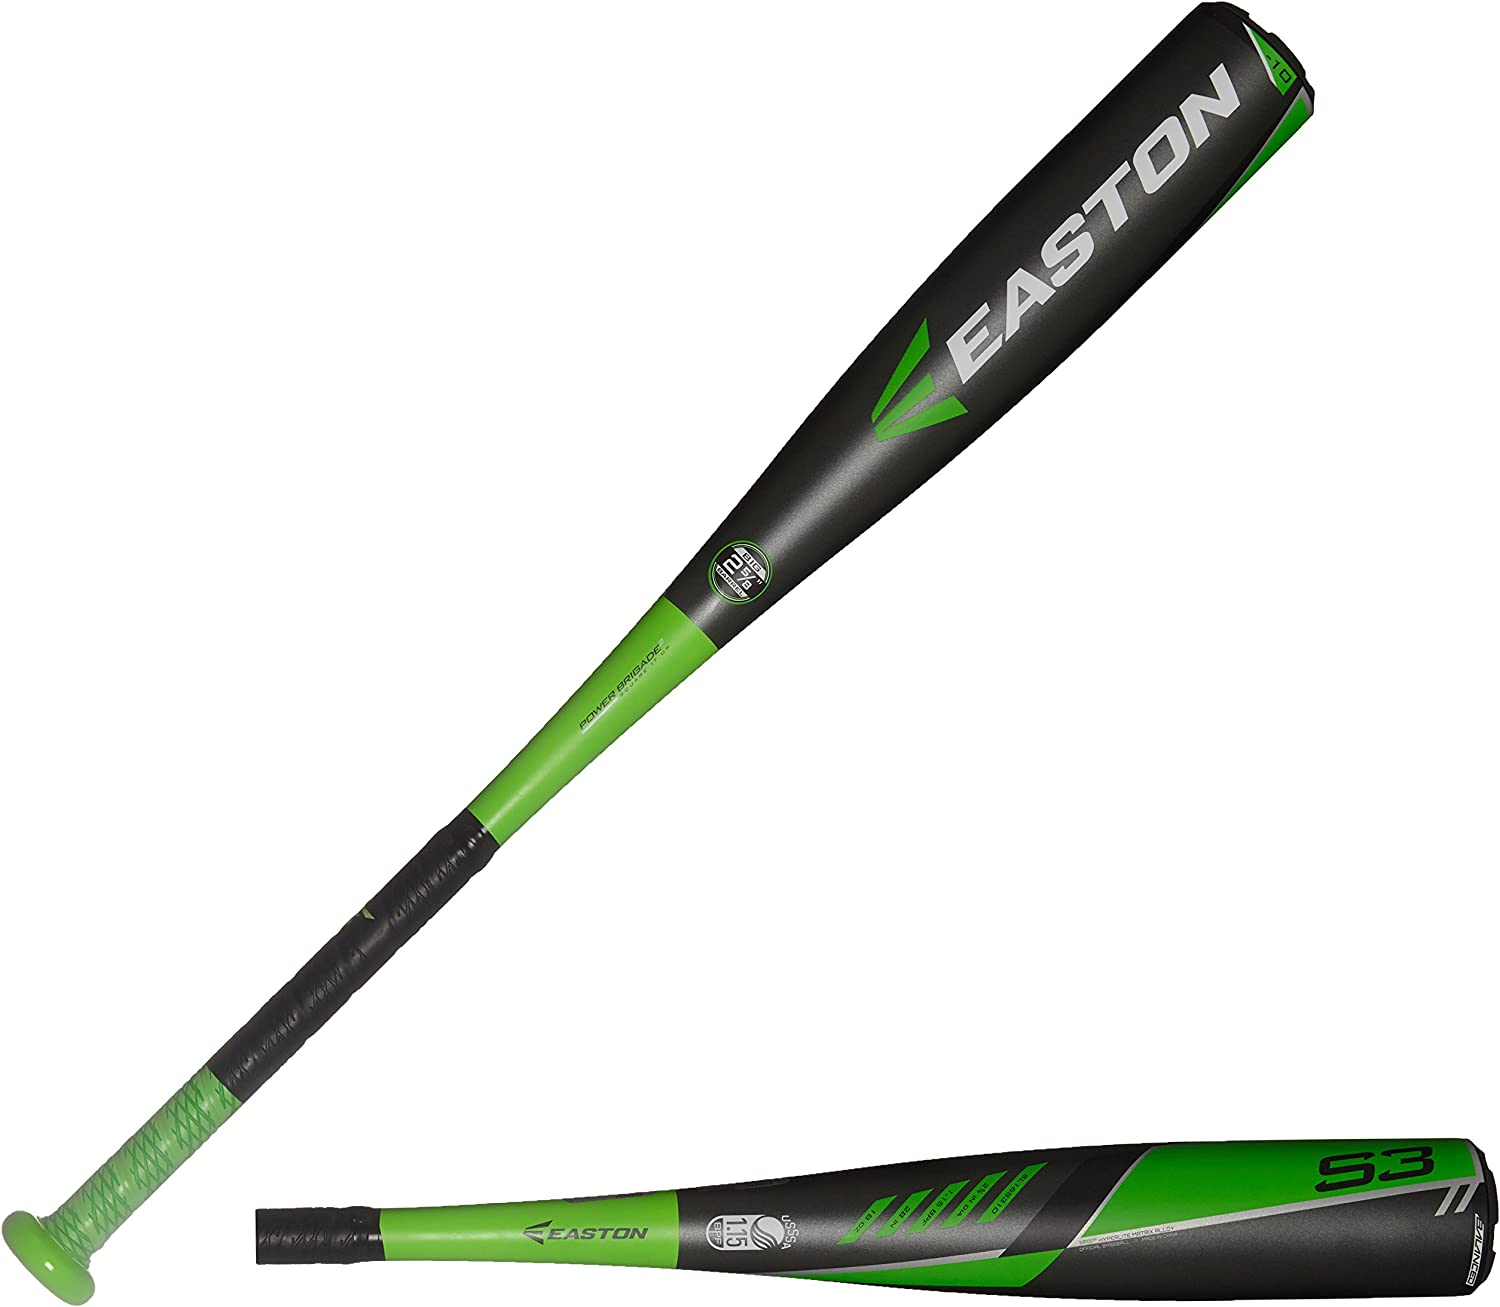 Easton S3 2 5 8  Big Barrel (10) Baseball Bat